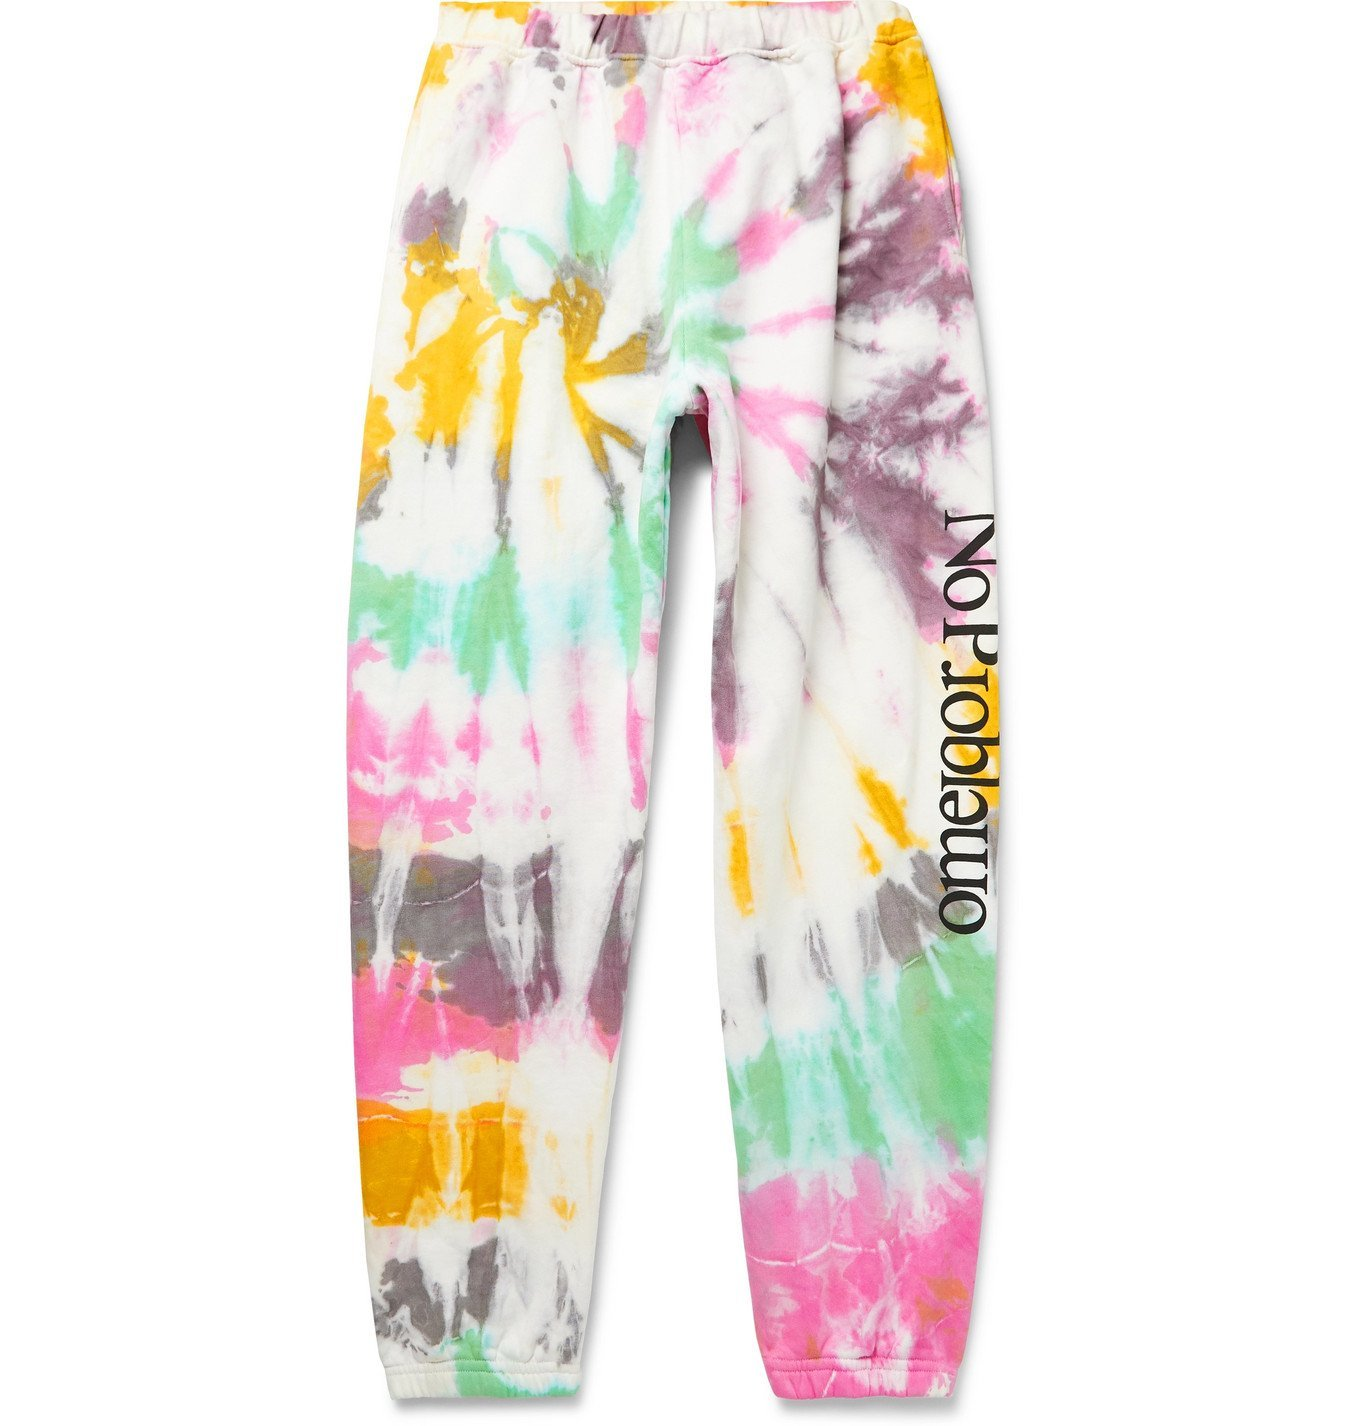 Aries - No Problemo Tapered Tie-Dyed Fleece-Back Cotton-Jersey Sweatpants - Multi